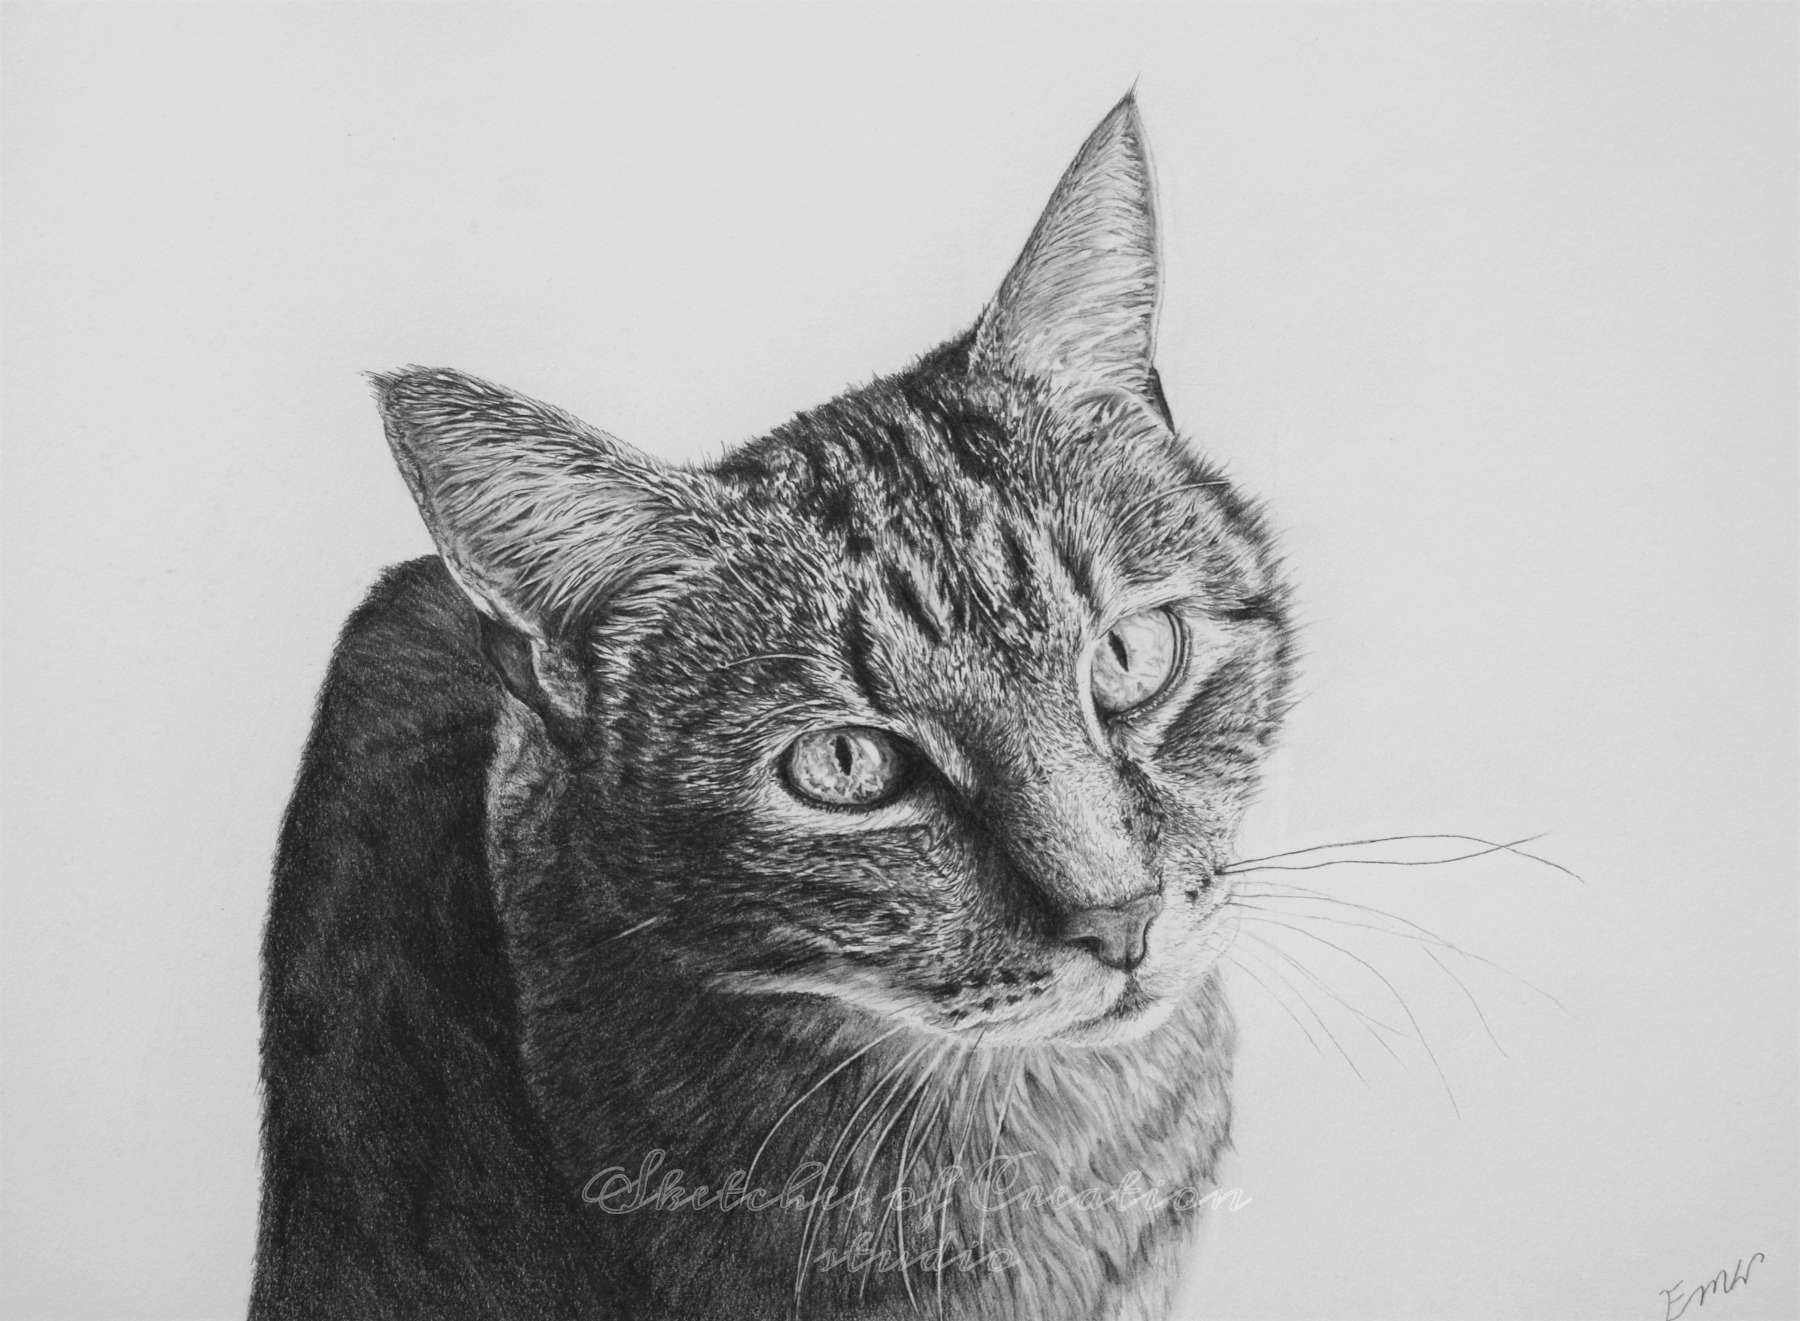 'Tiger' a drawing of a tabby cat. 9x12 inches. Completed June 2019